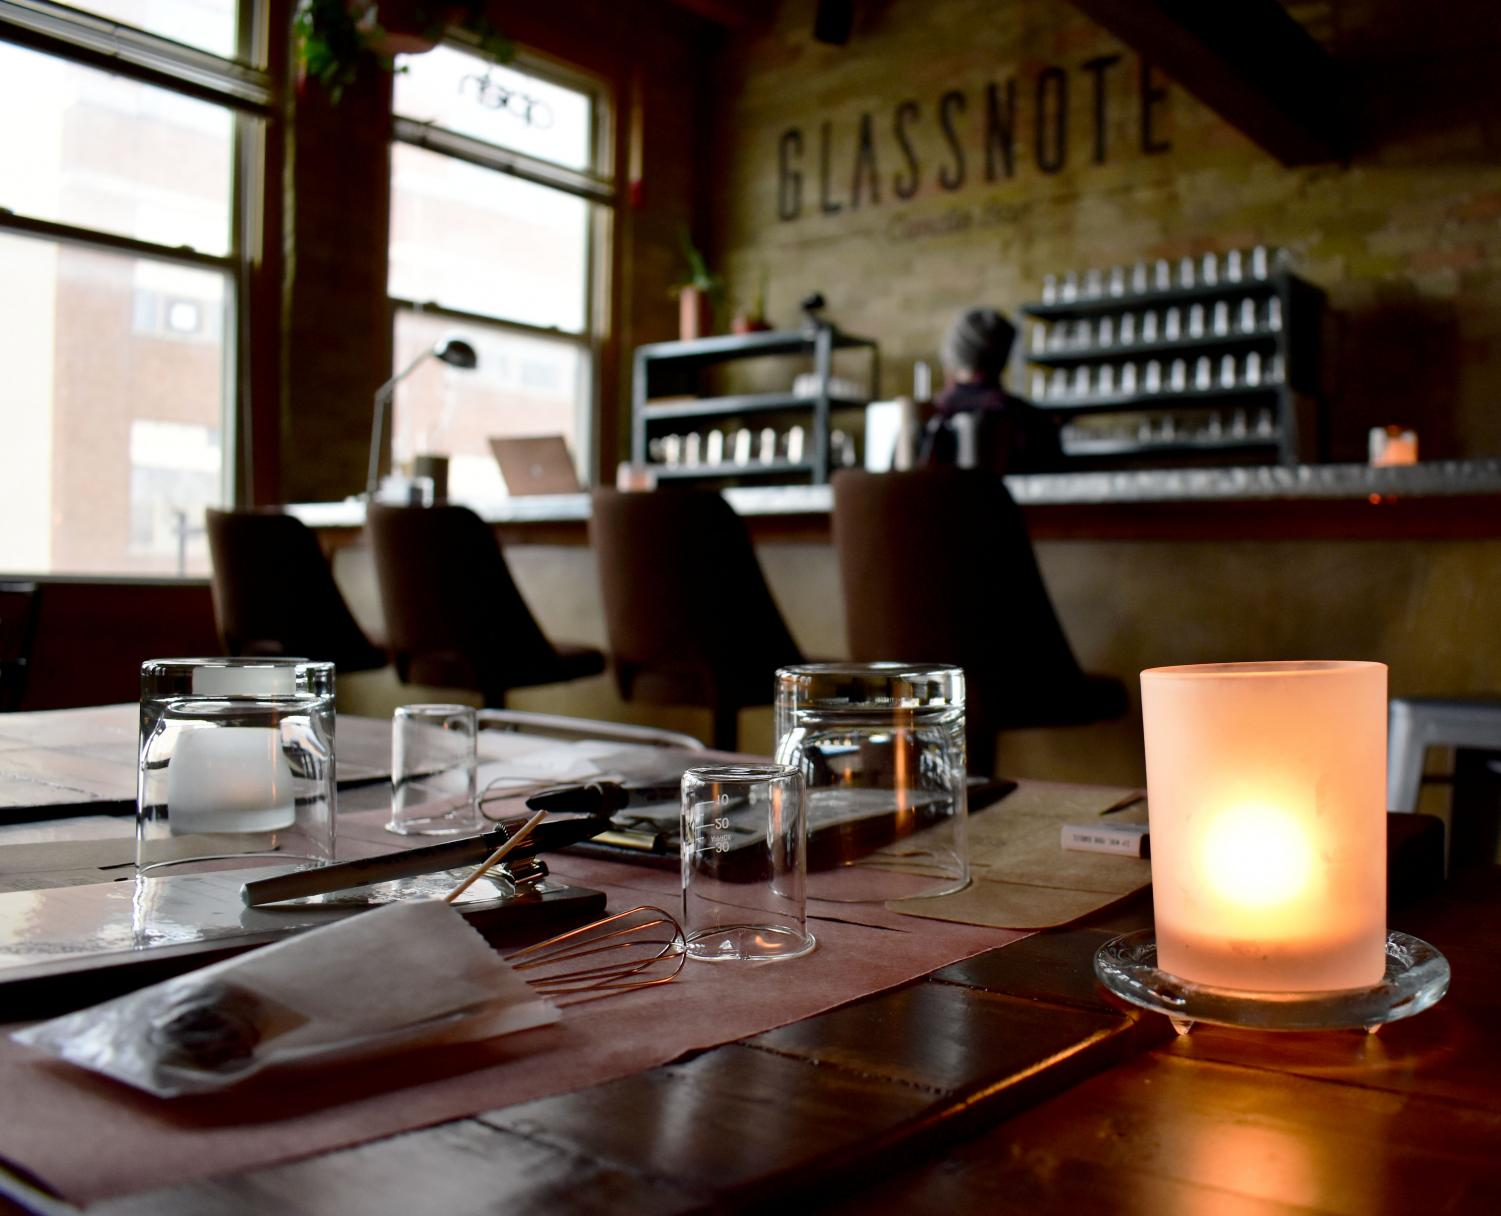 The venue, located at 524 S. 2nd St., is decorated with old-style charm, including soft lighting, Cream City brick, wooden tables and hanging plants.